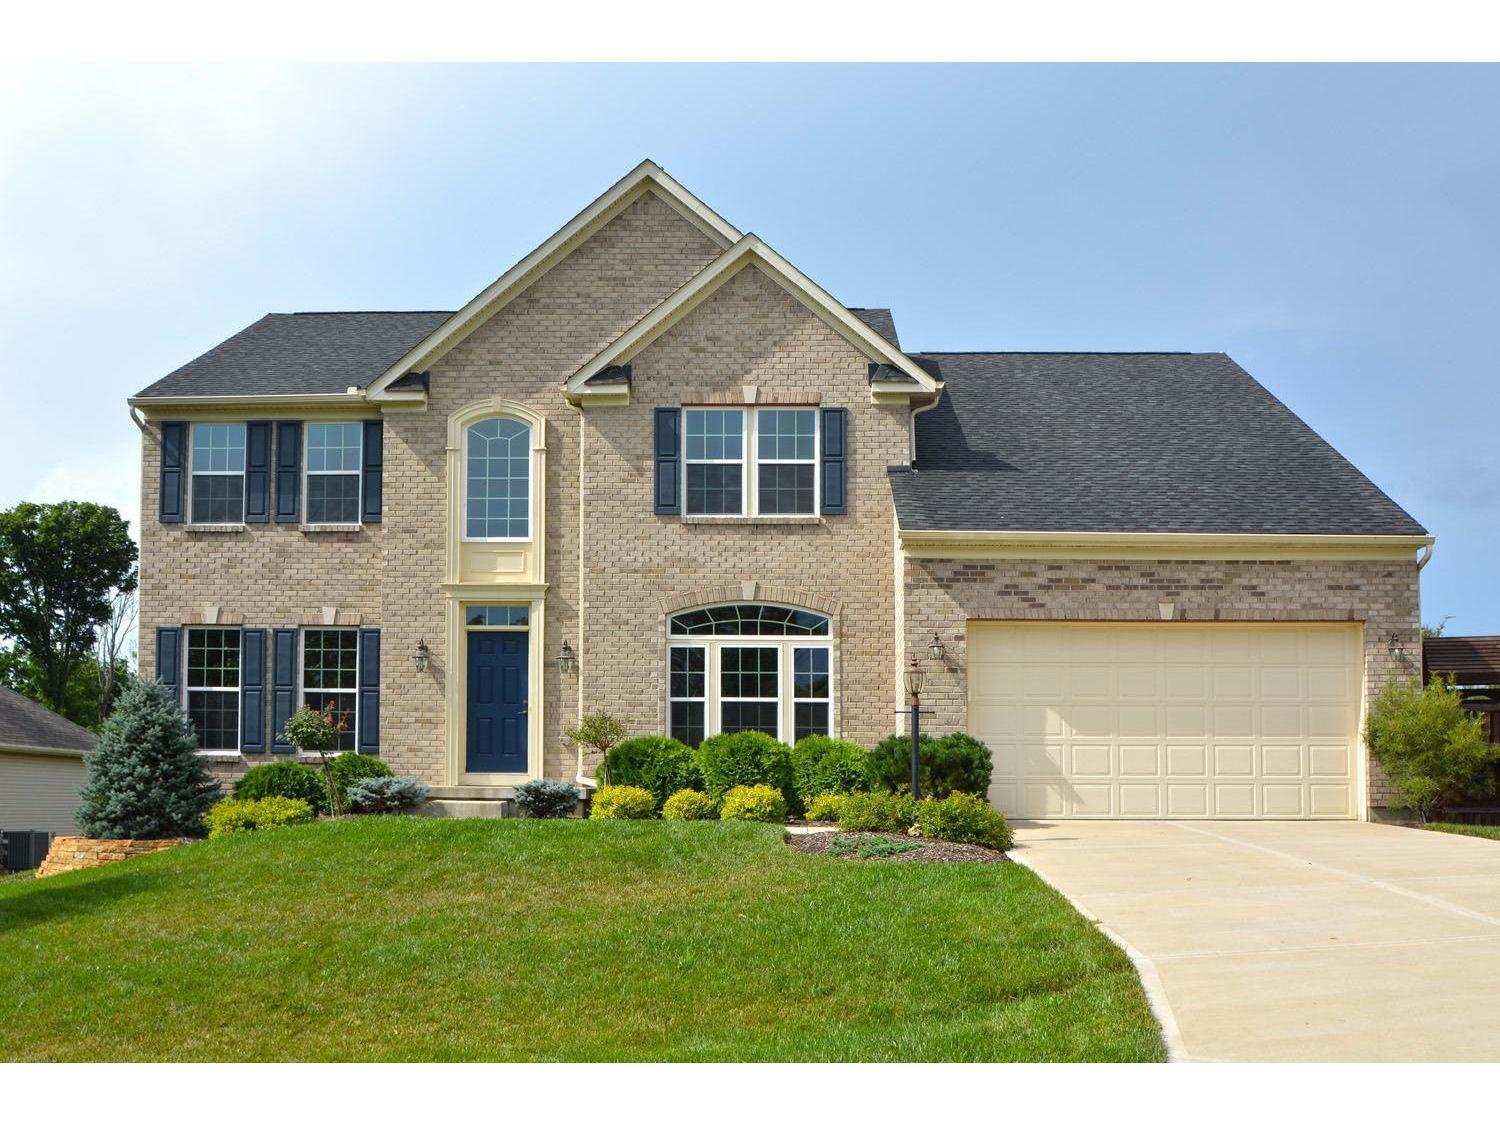 5550 Falling Wood Ct Miami Twp. (East), OH